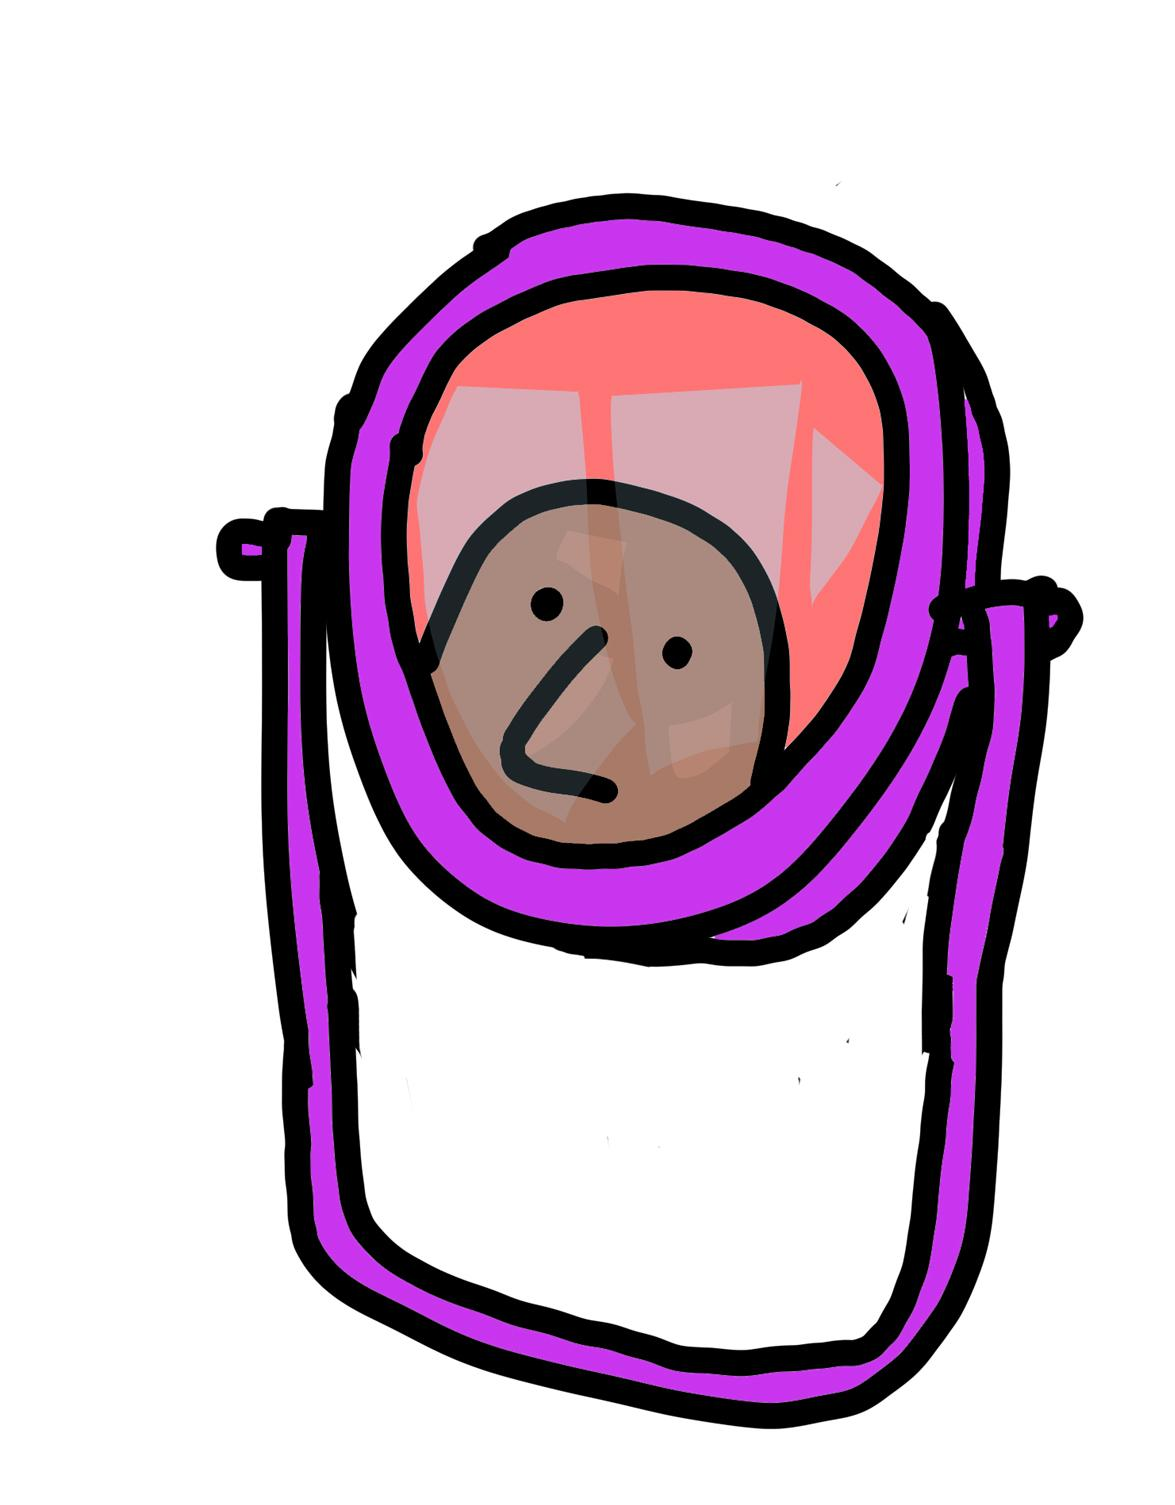 A simple illustration shows a bald dark-skinned person peering into a purple mirror.